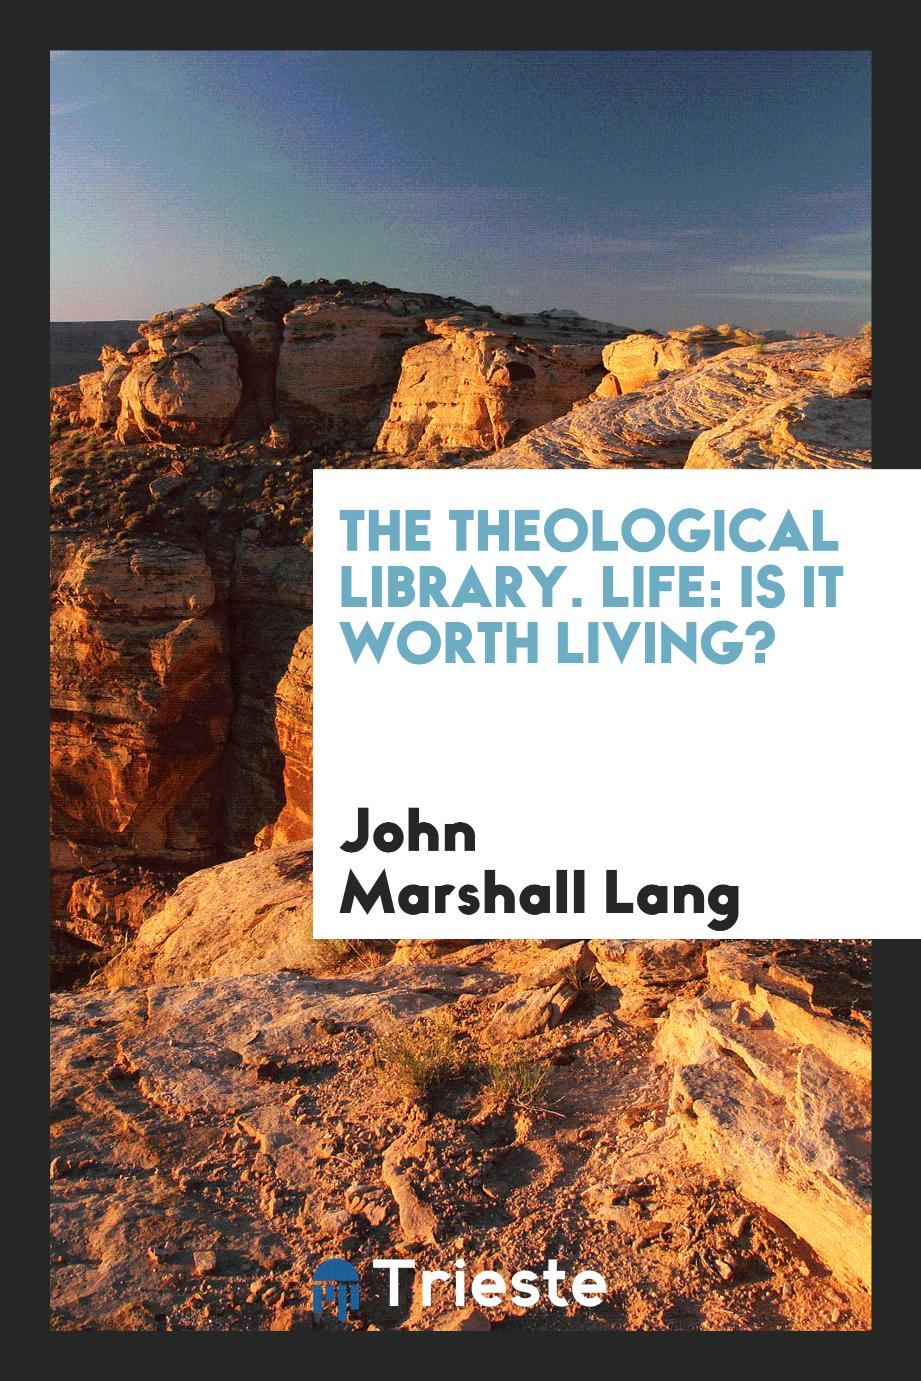 The theological Library. Life: is it worth living?